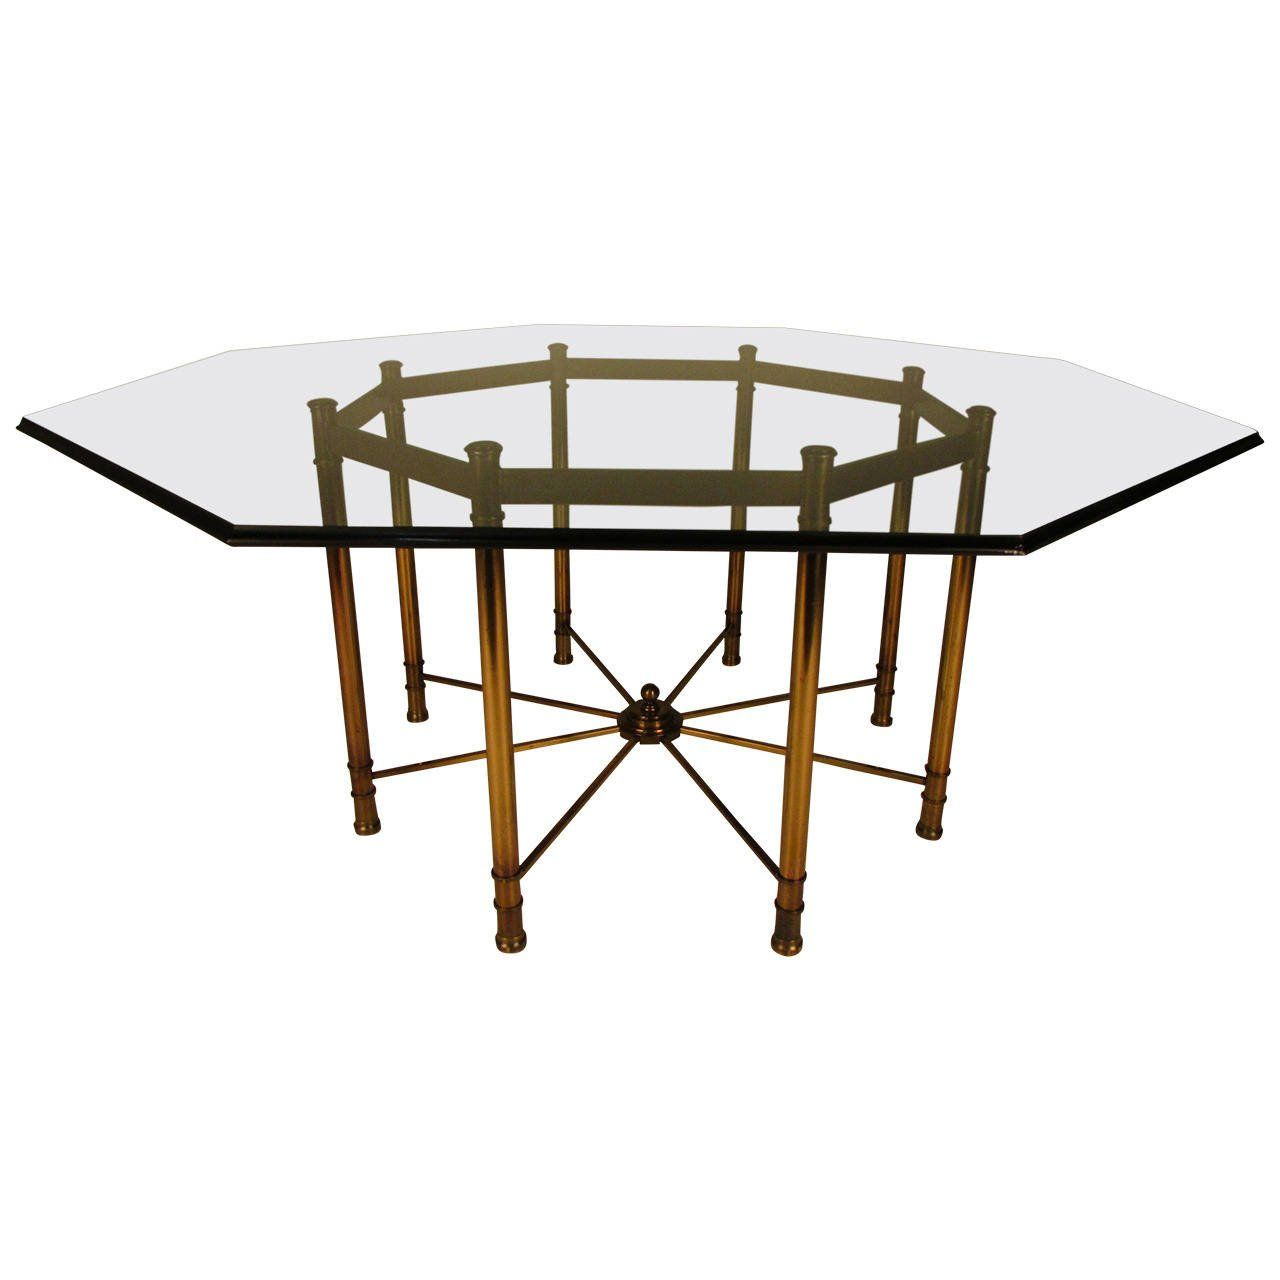 Pin By Matt Mcintyre On Home Furnishings Glass Dining Table Dining Table Modern Dining Room Tables